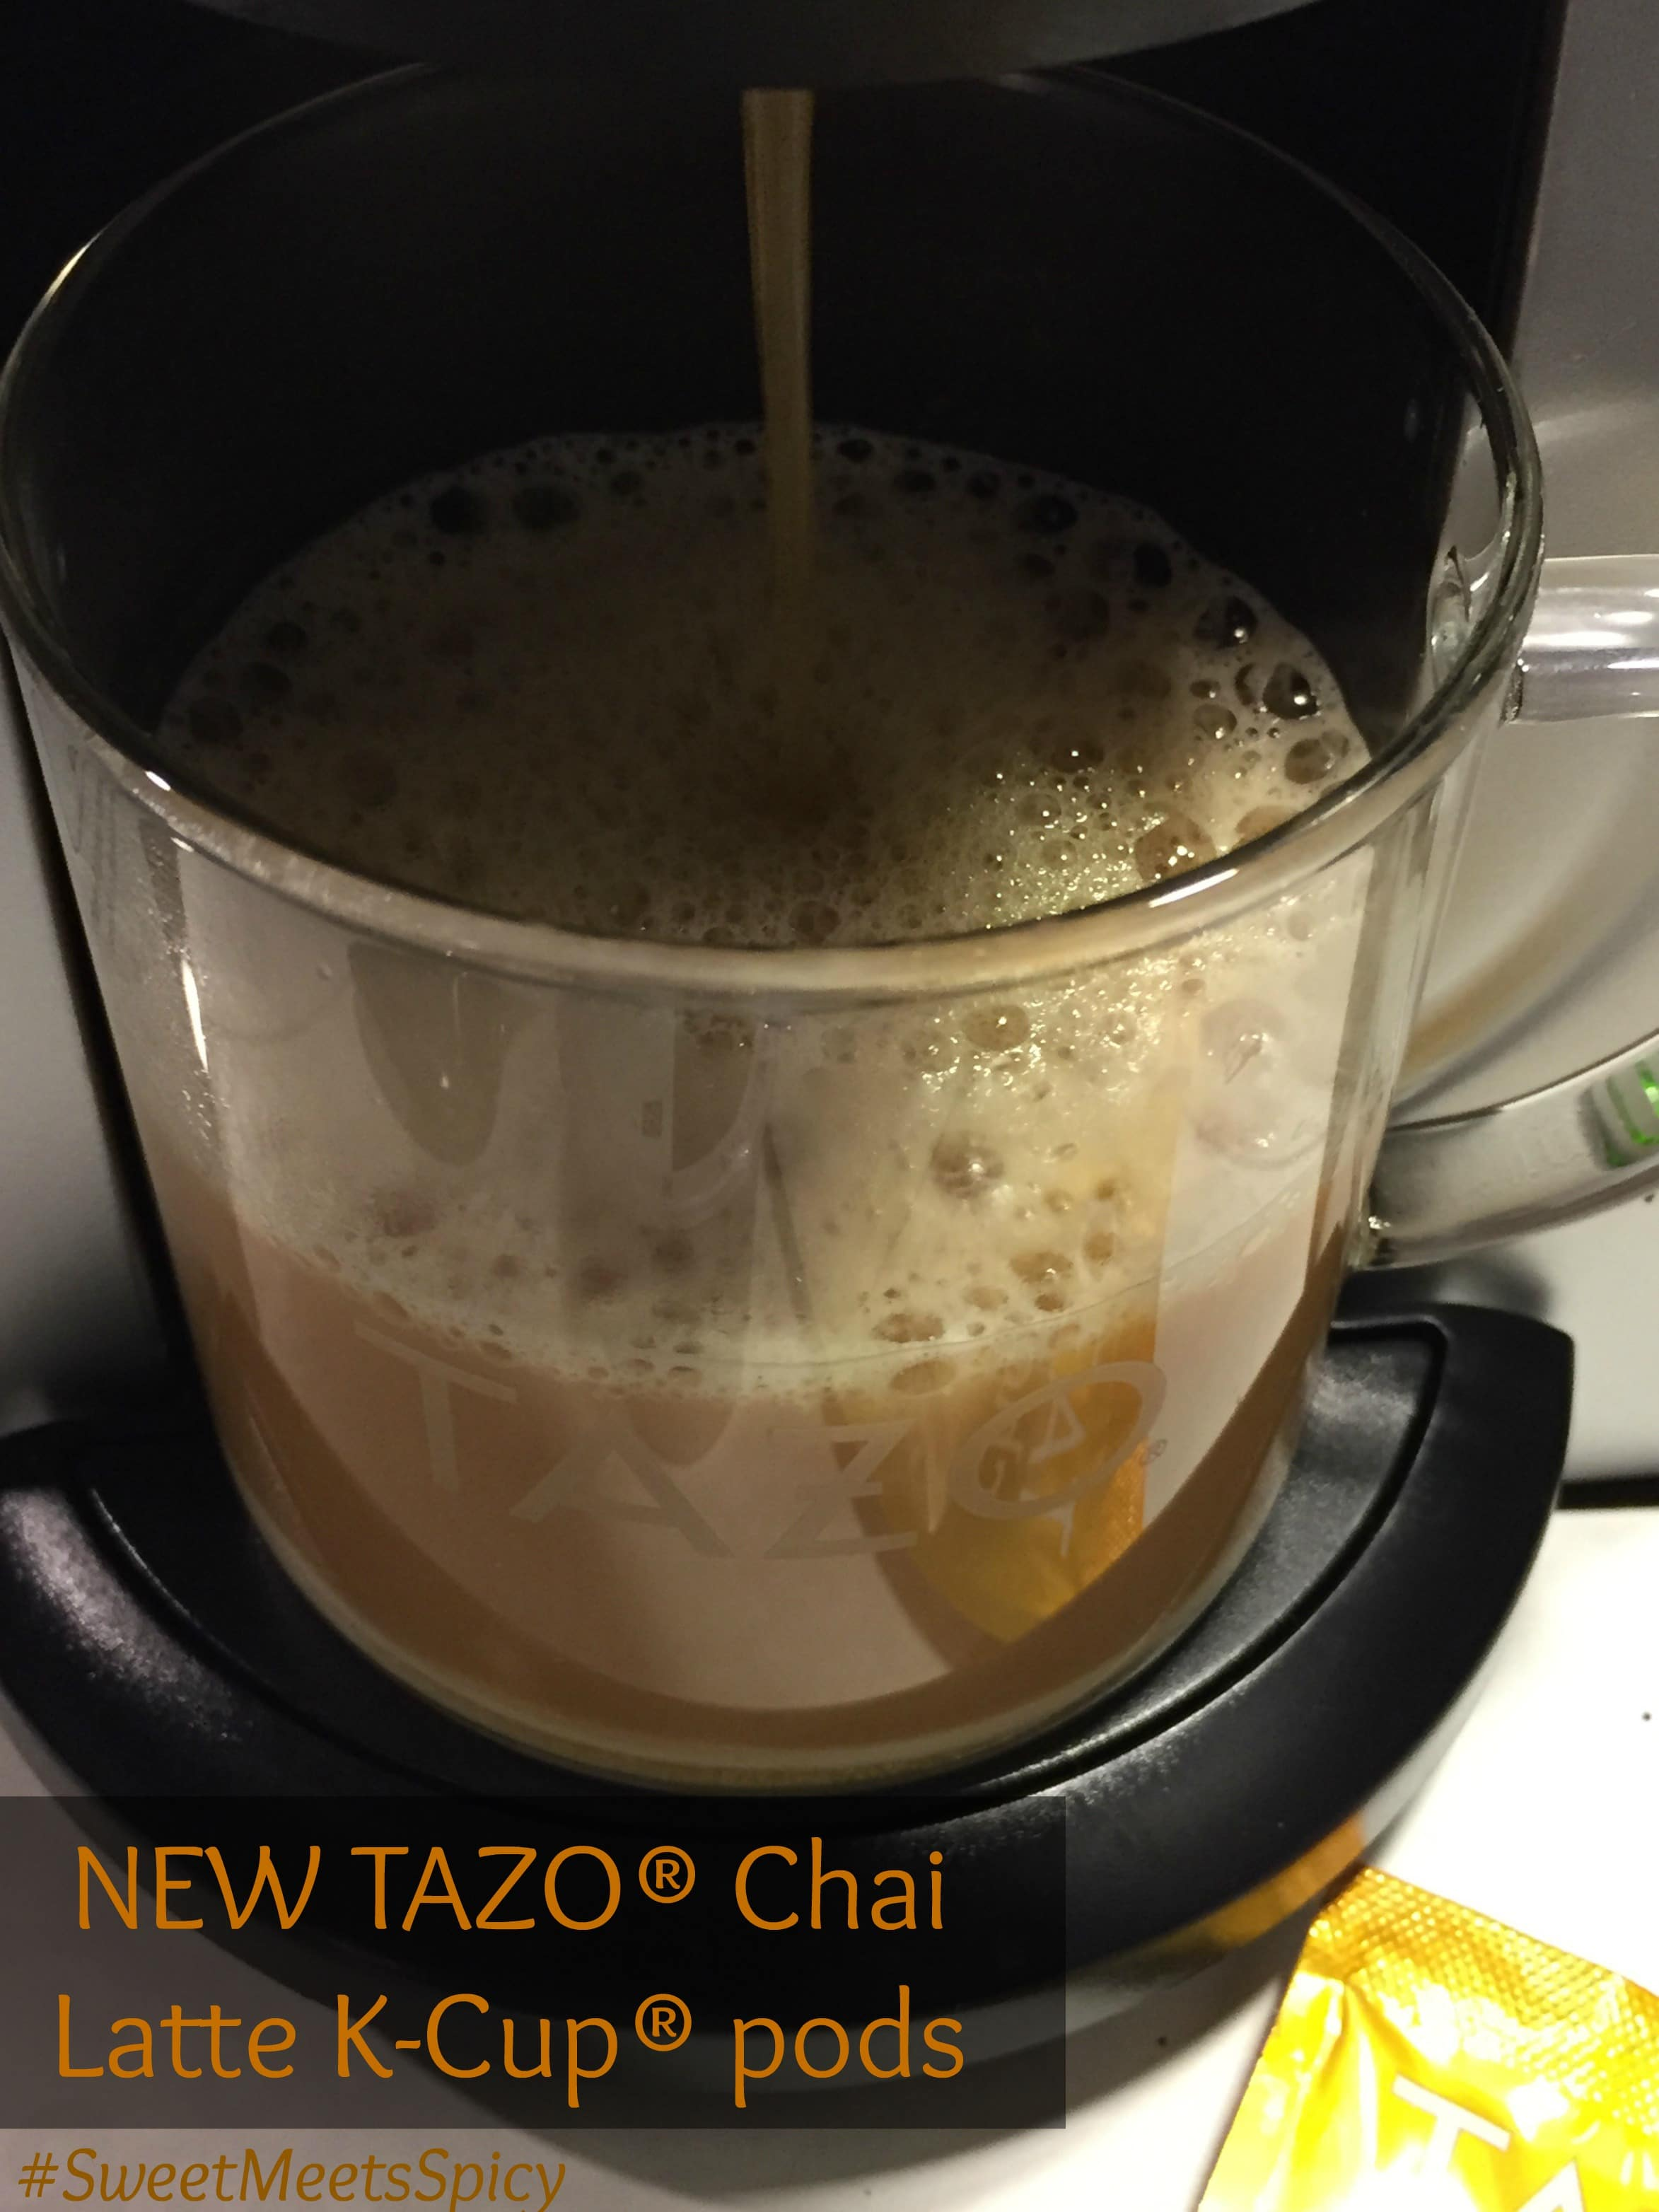 NEW TAZO Chai Latte K-Cup pods #SweetMeetsSpicy